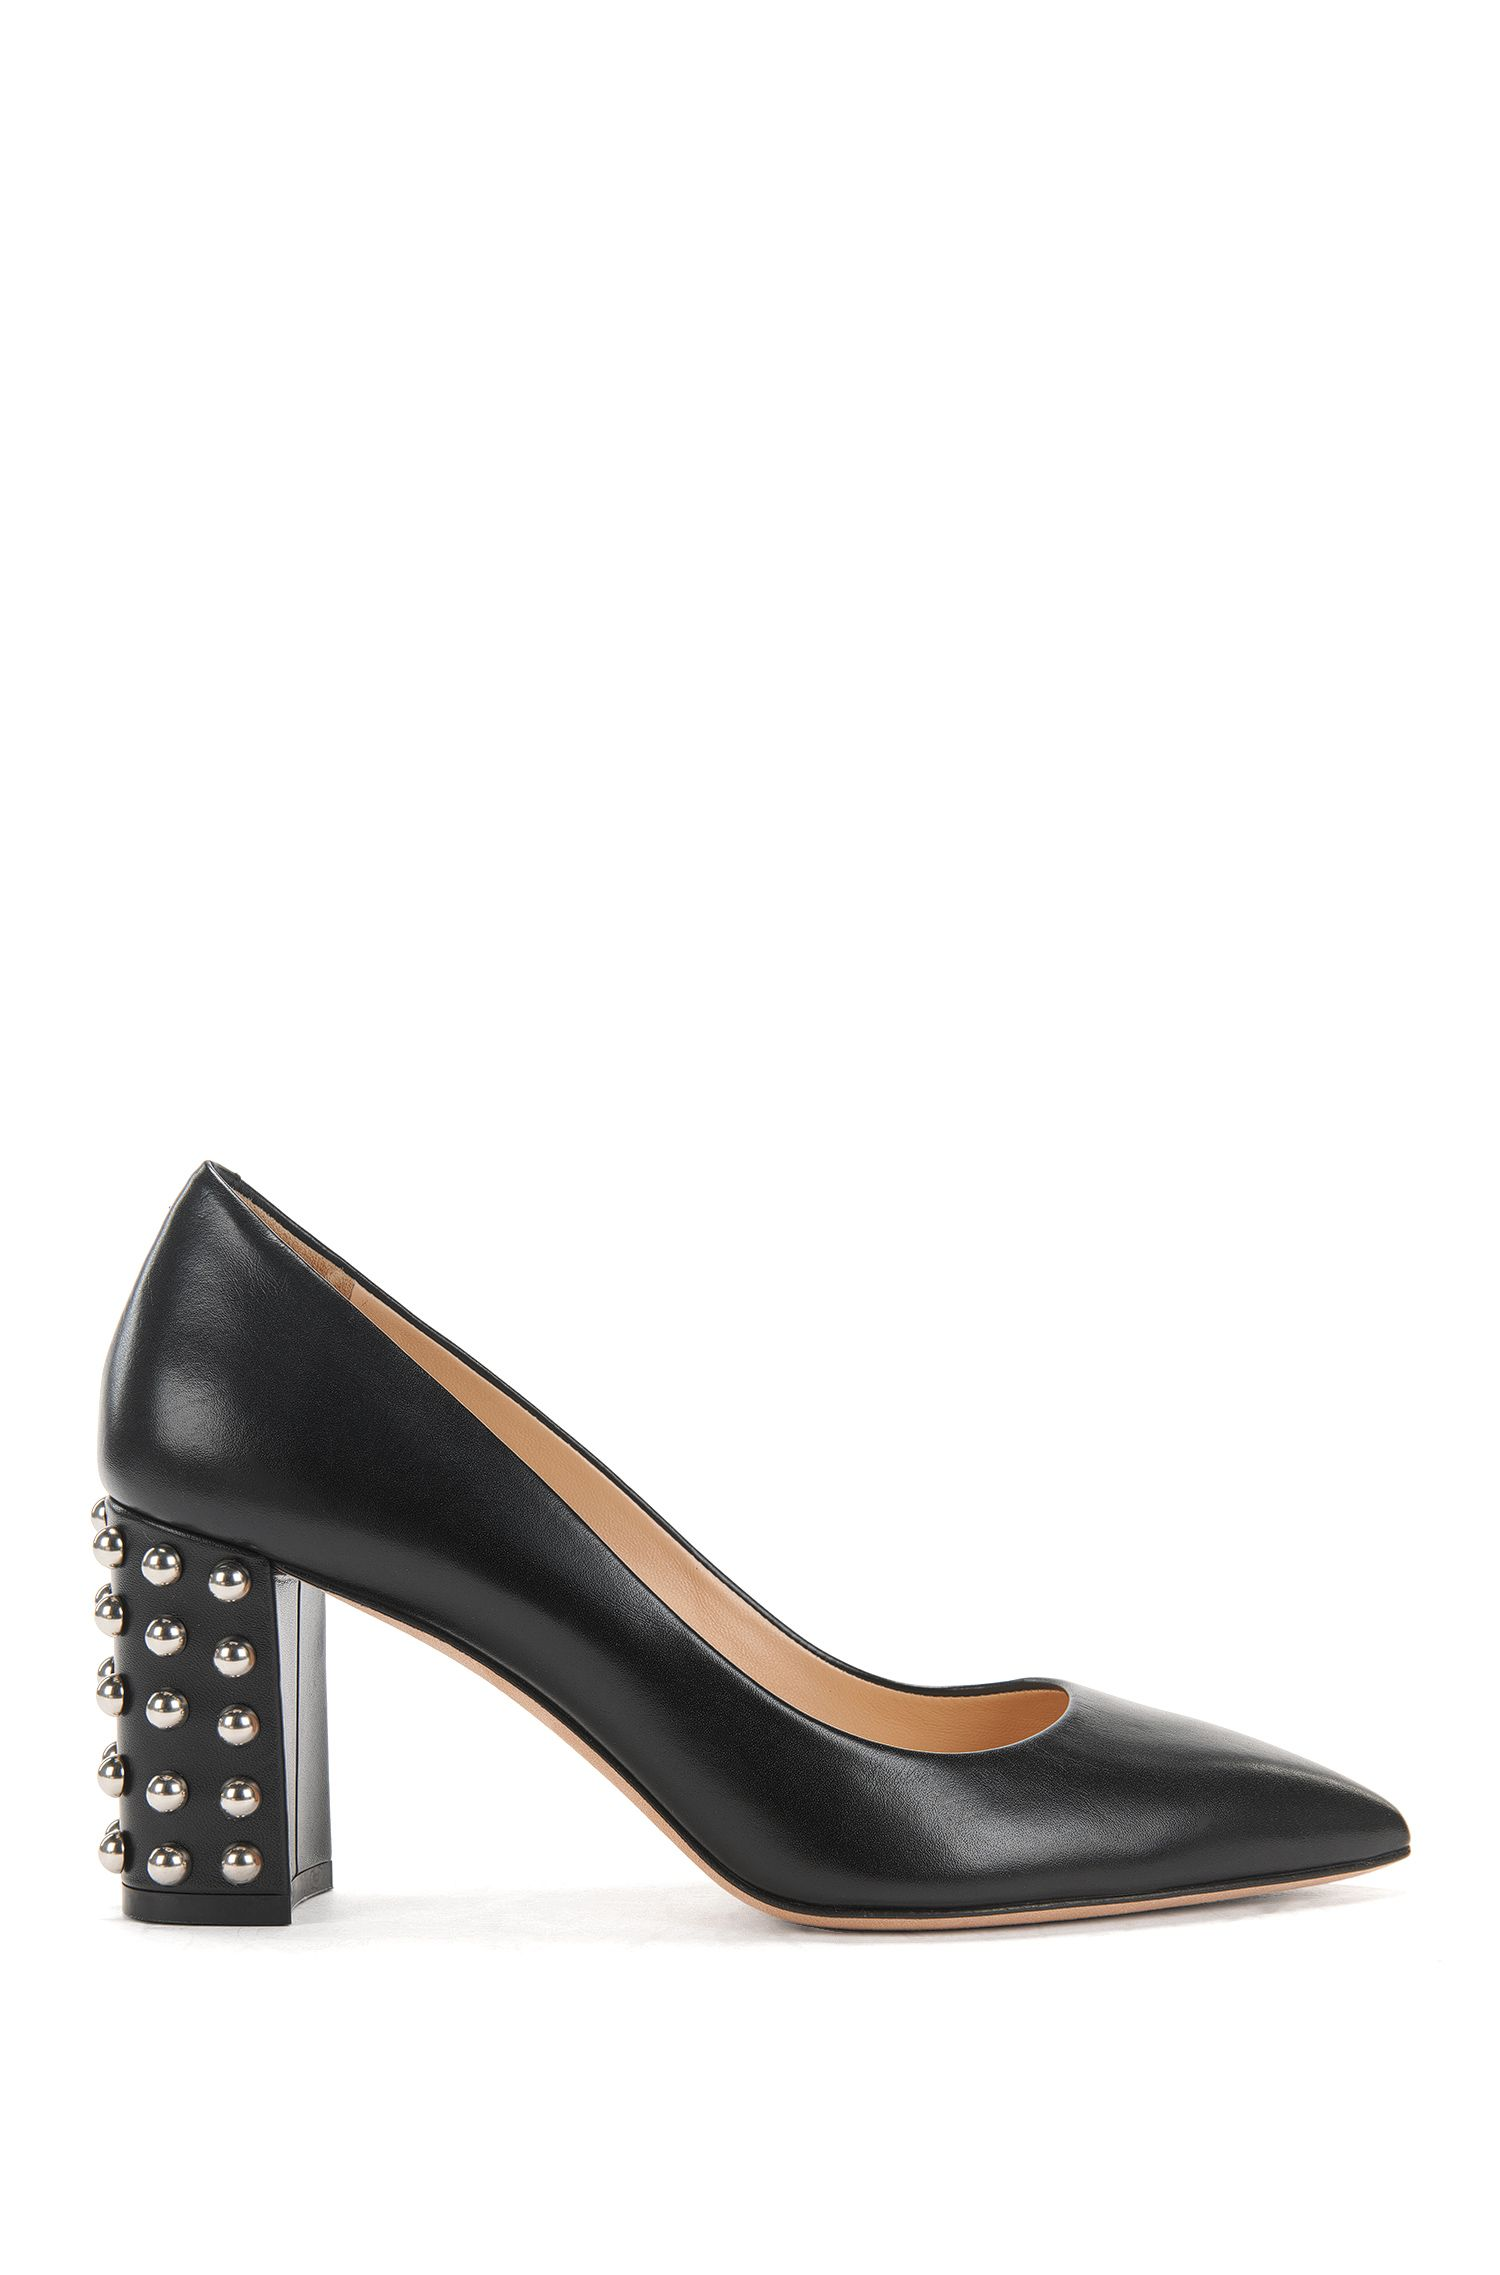 Italian calf-leather pumps with stud detailing